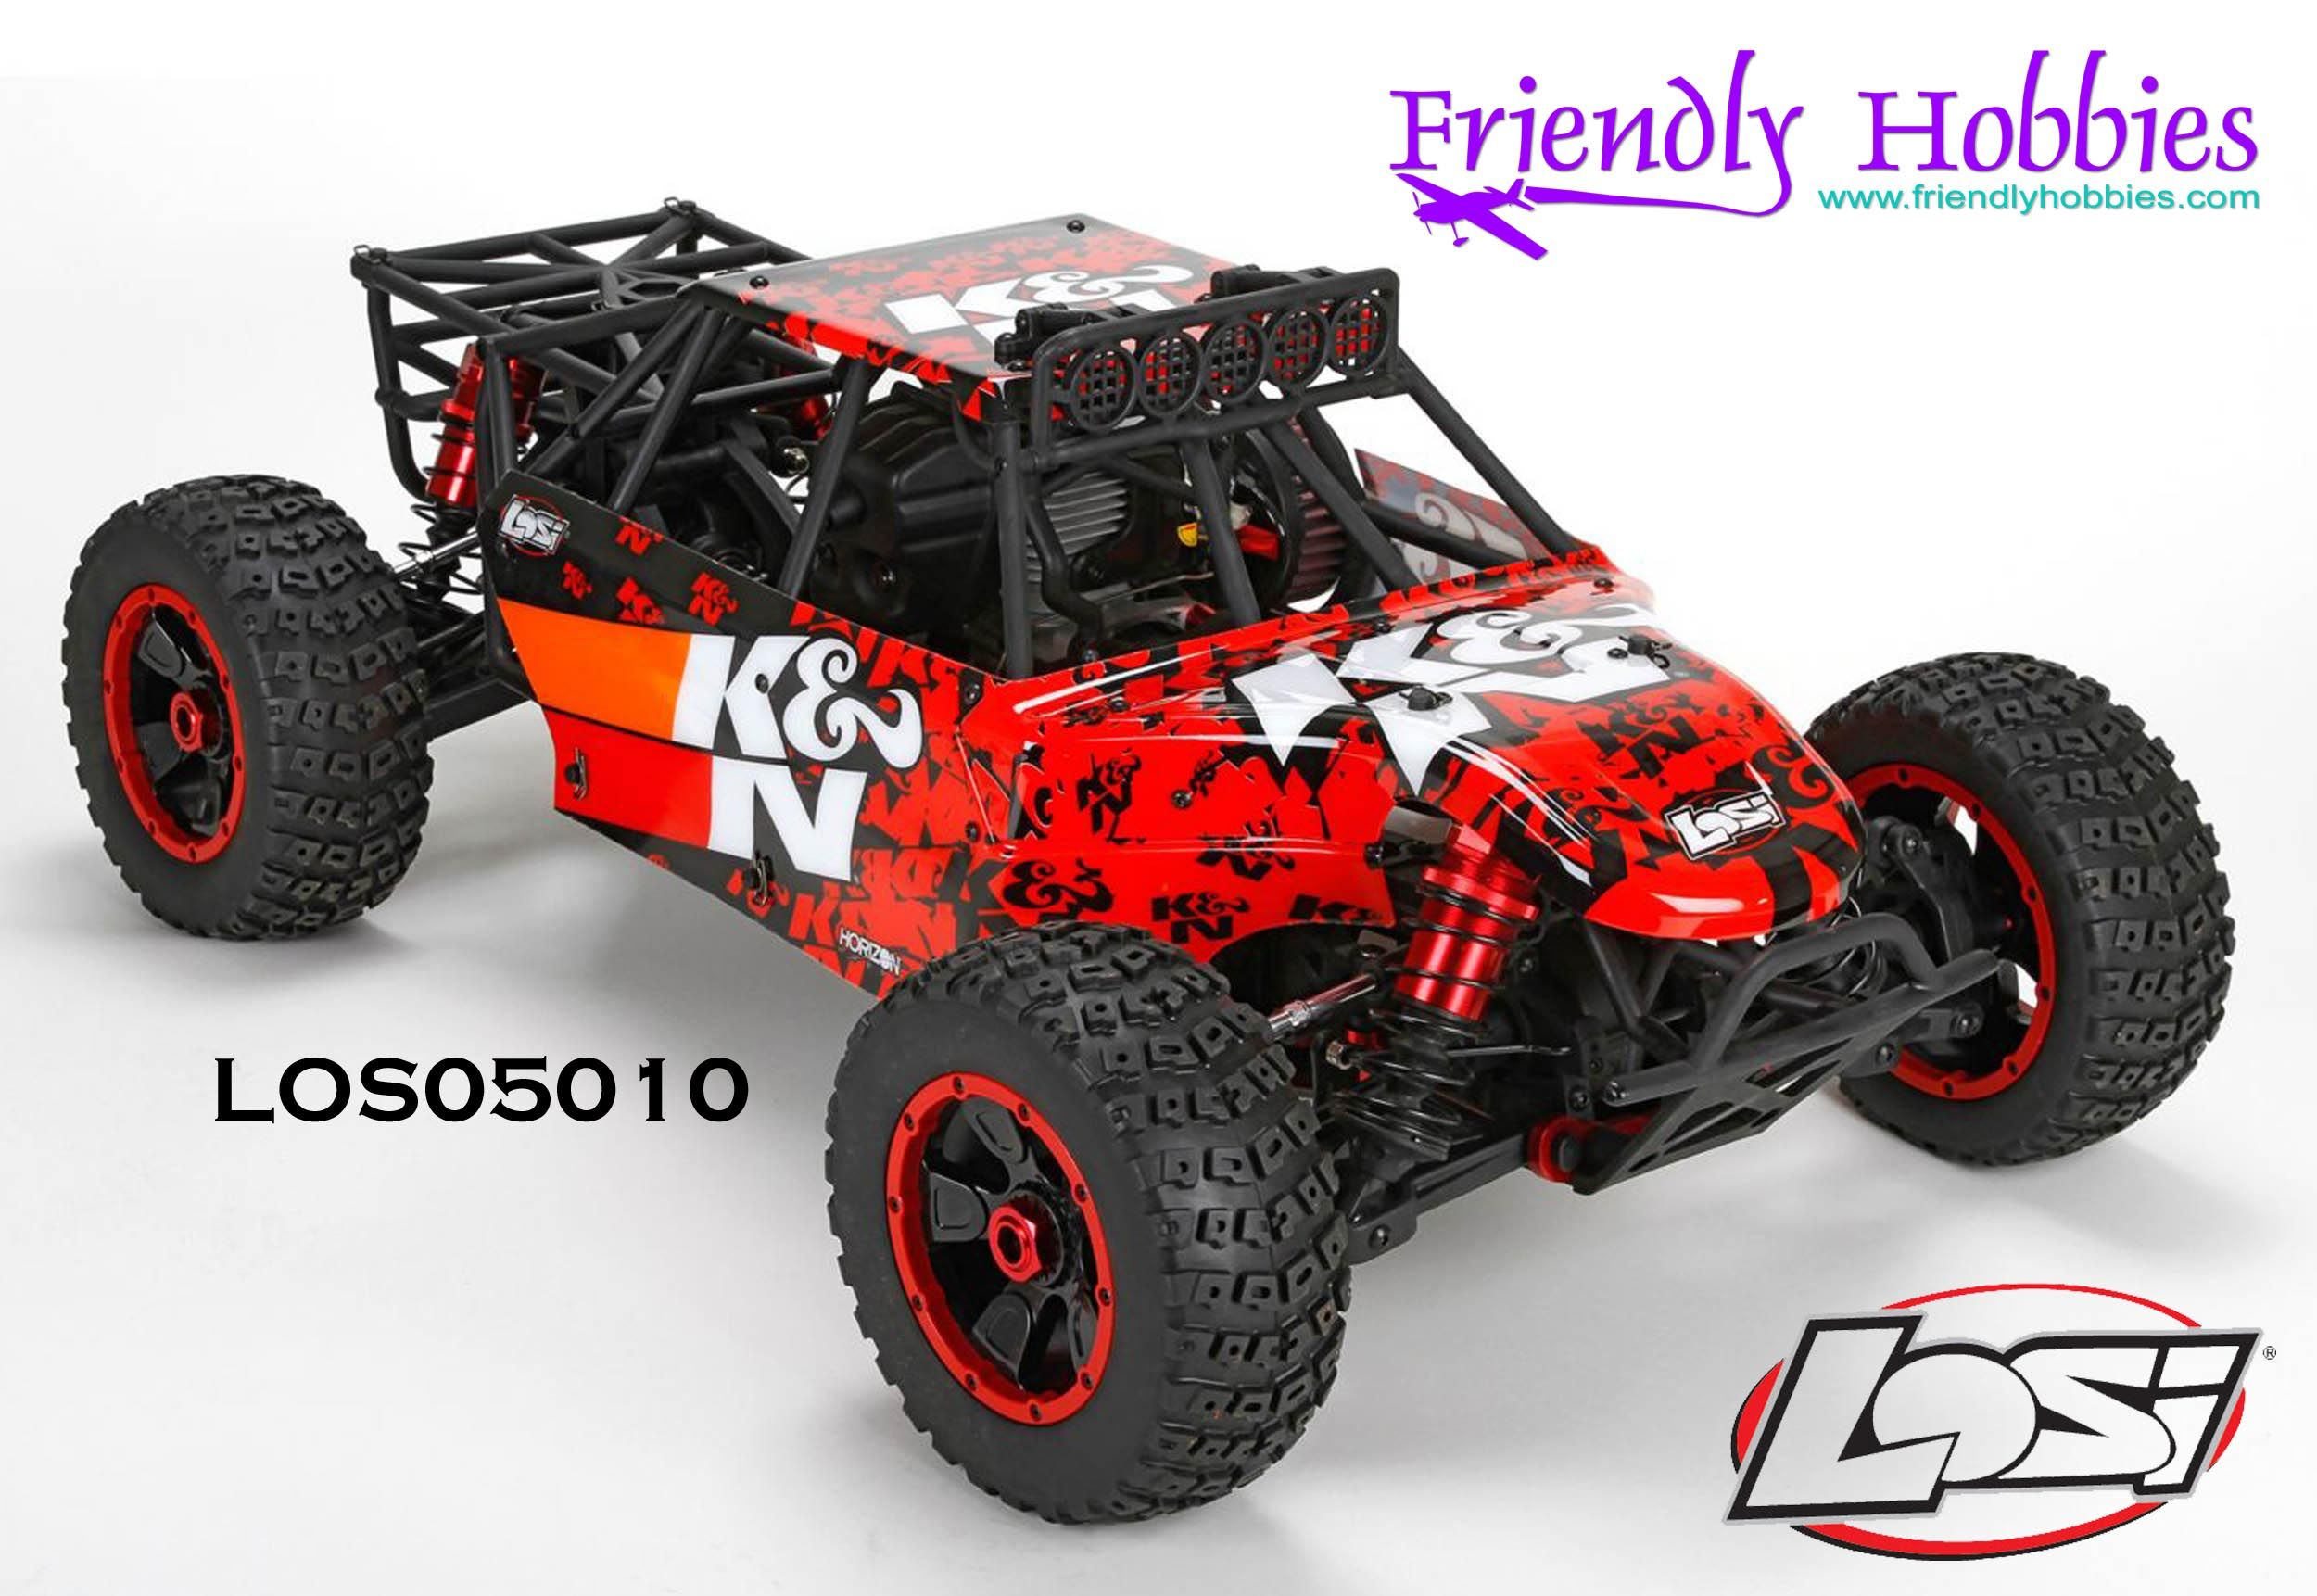 ARRMA 1 8 TYPHON 6S Bushless 4WD 2 4GHz RTR The ARRMA TYPHON 6S Speed Buggy is a 1 8 scale electric Buggy that is designed for high speed multi te…